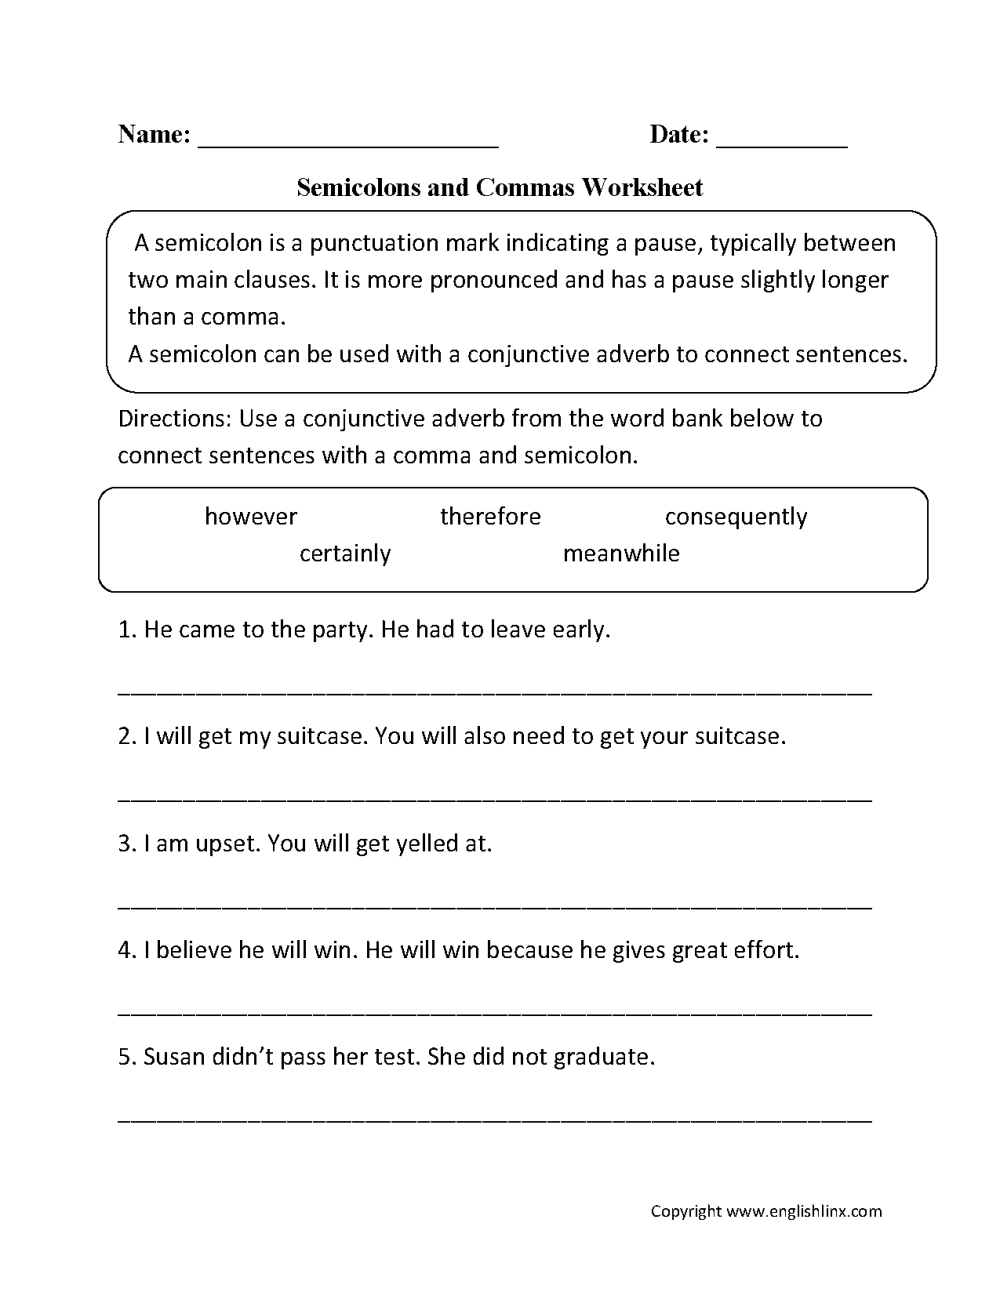 medium resolution of 24 Best 5th Grade Puncuation Worksheets images on Worksheets Ideas